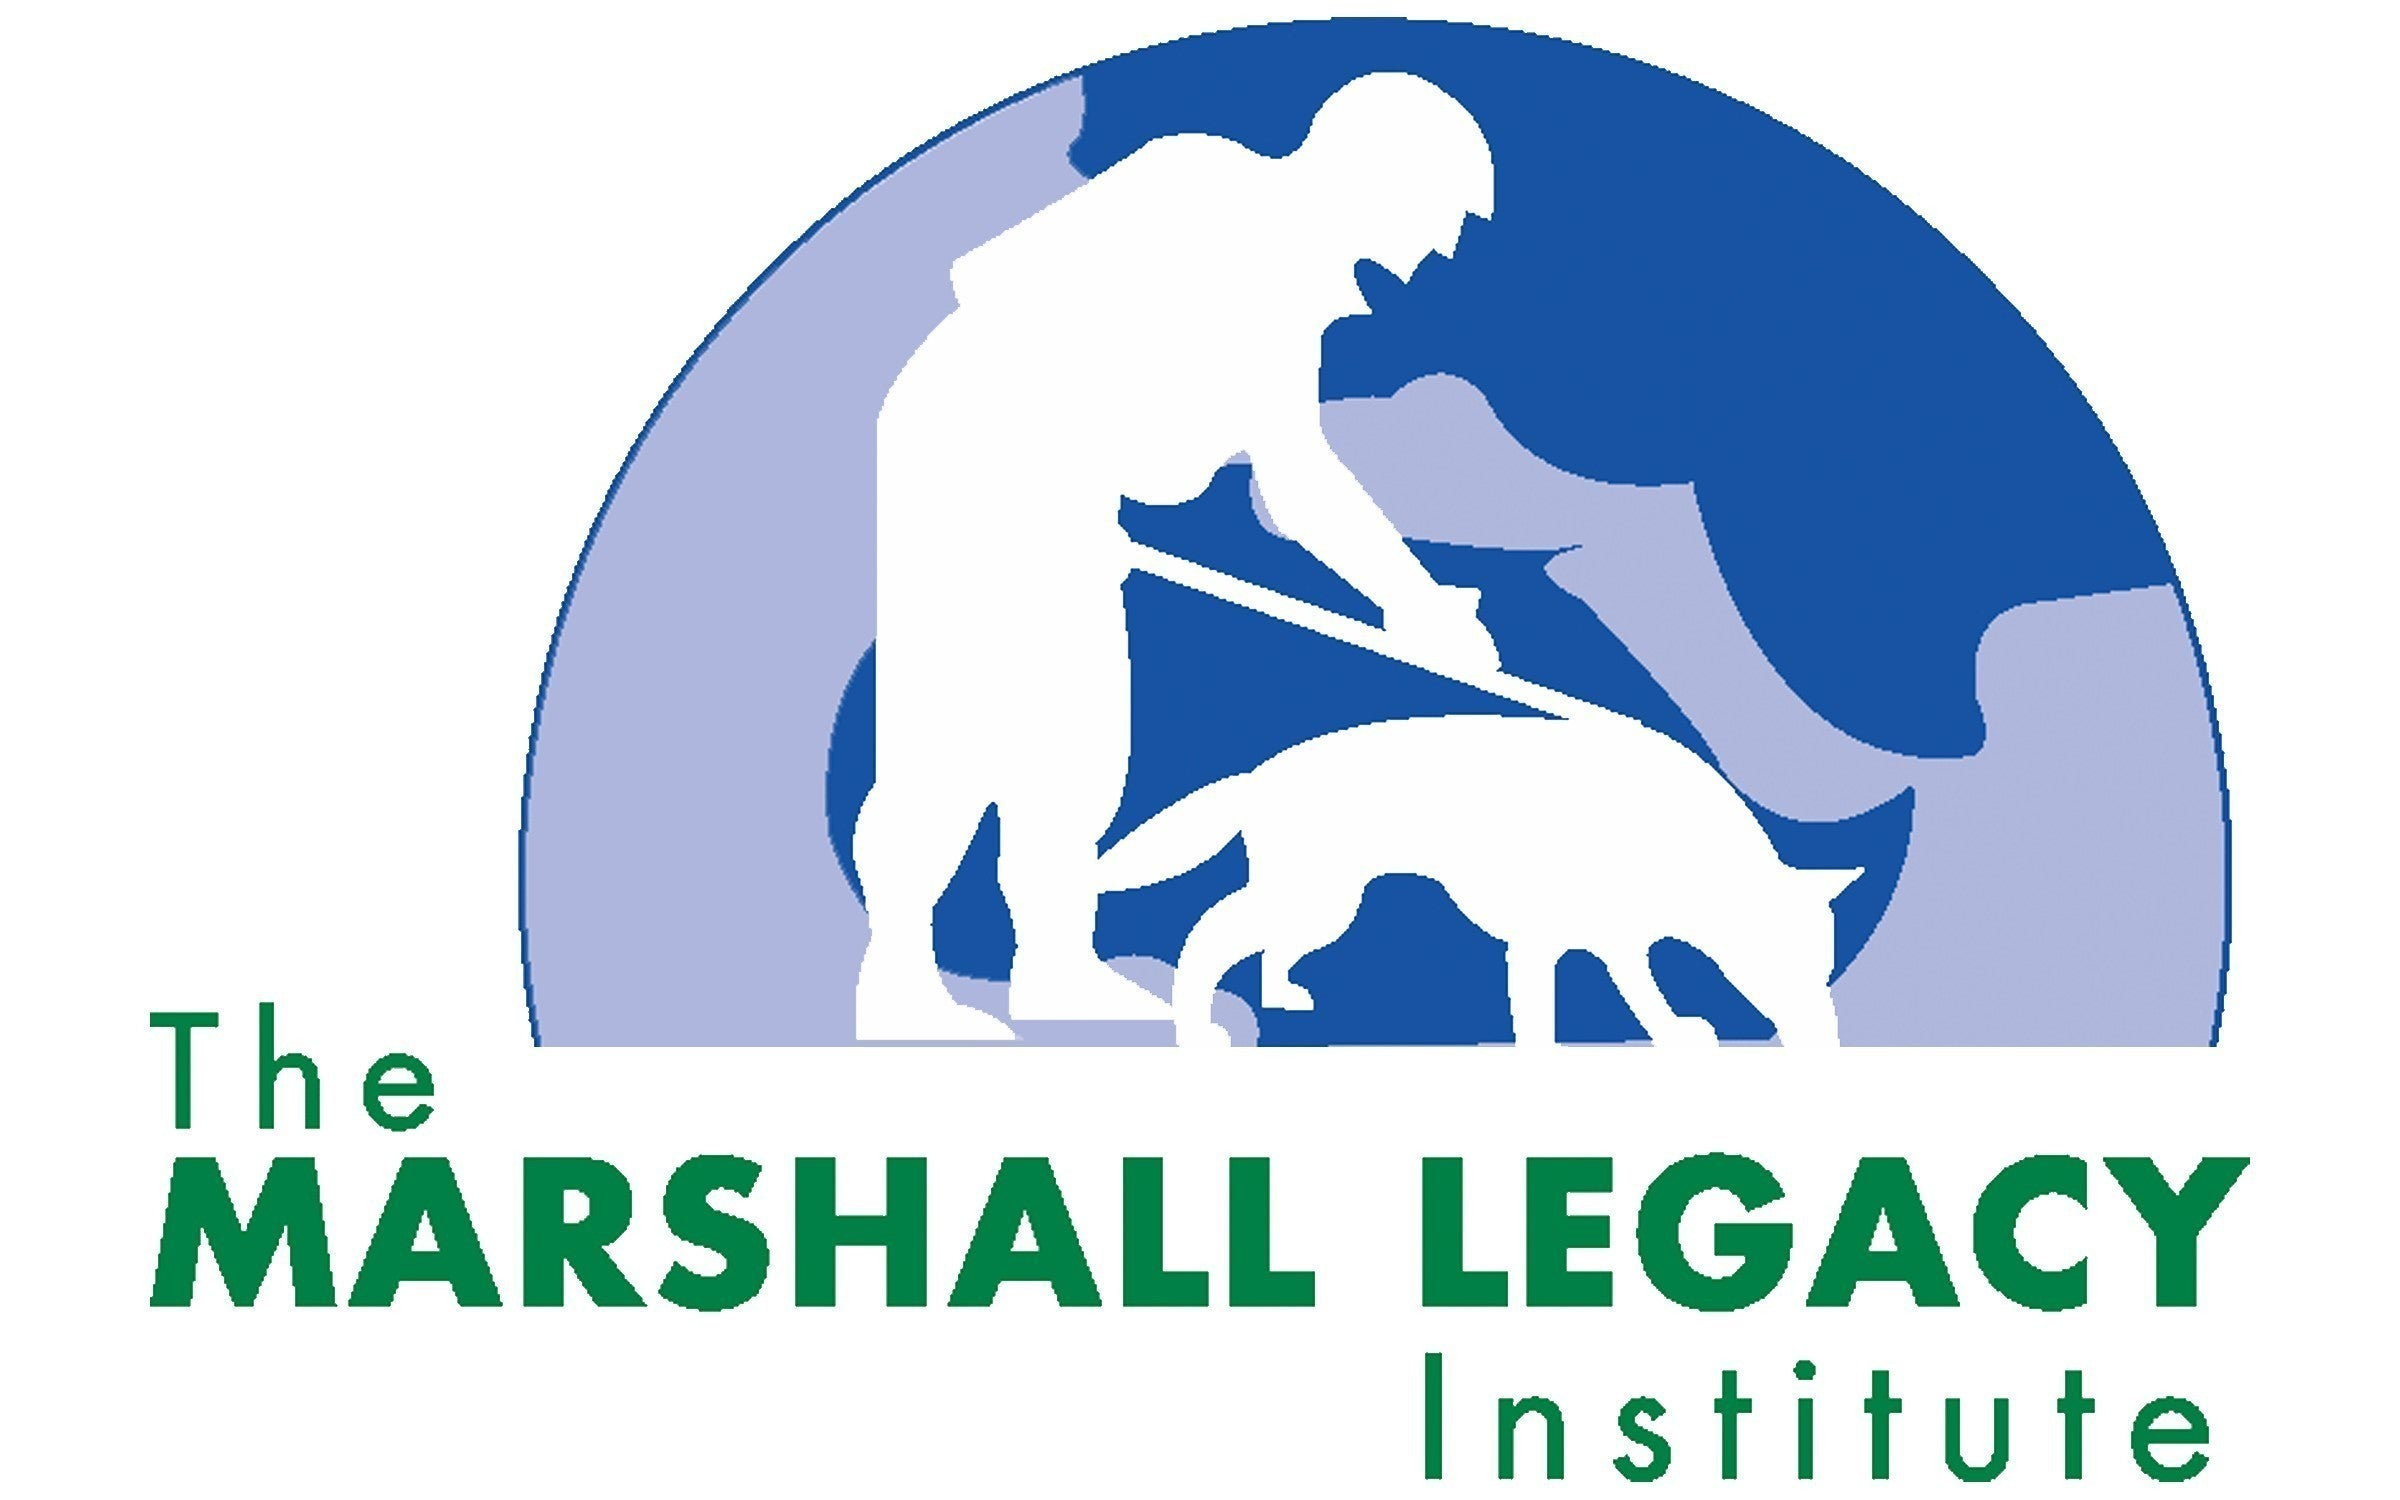 The Marshall Legacy Institute logo